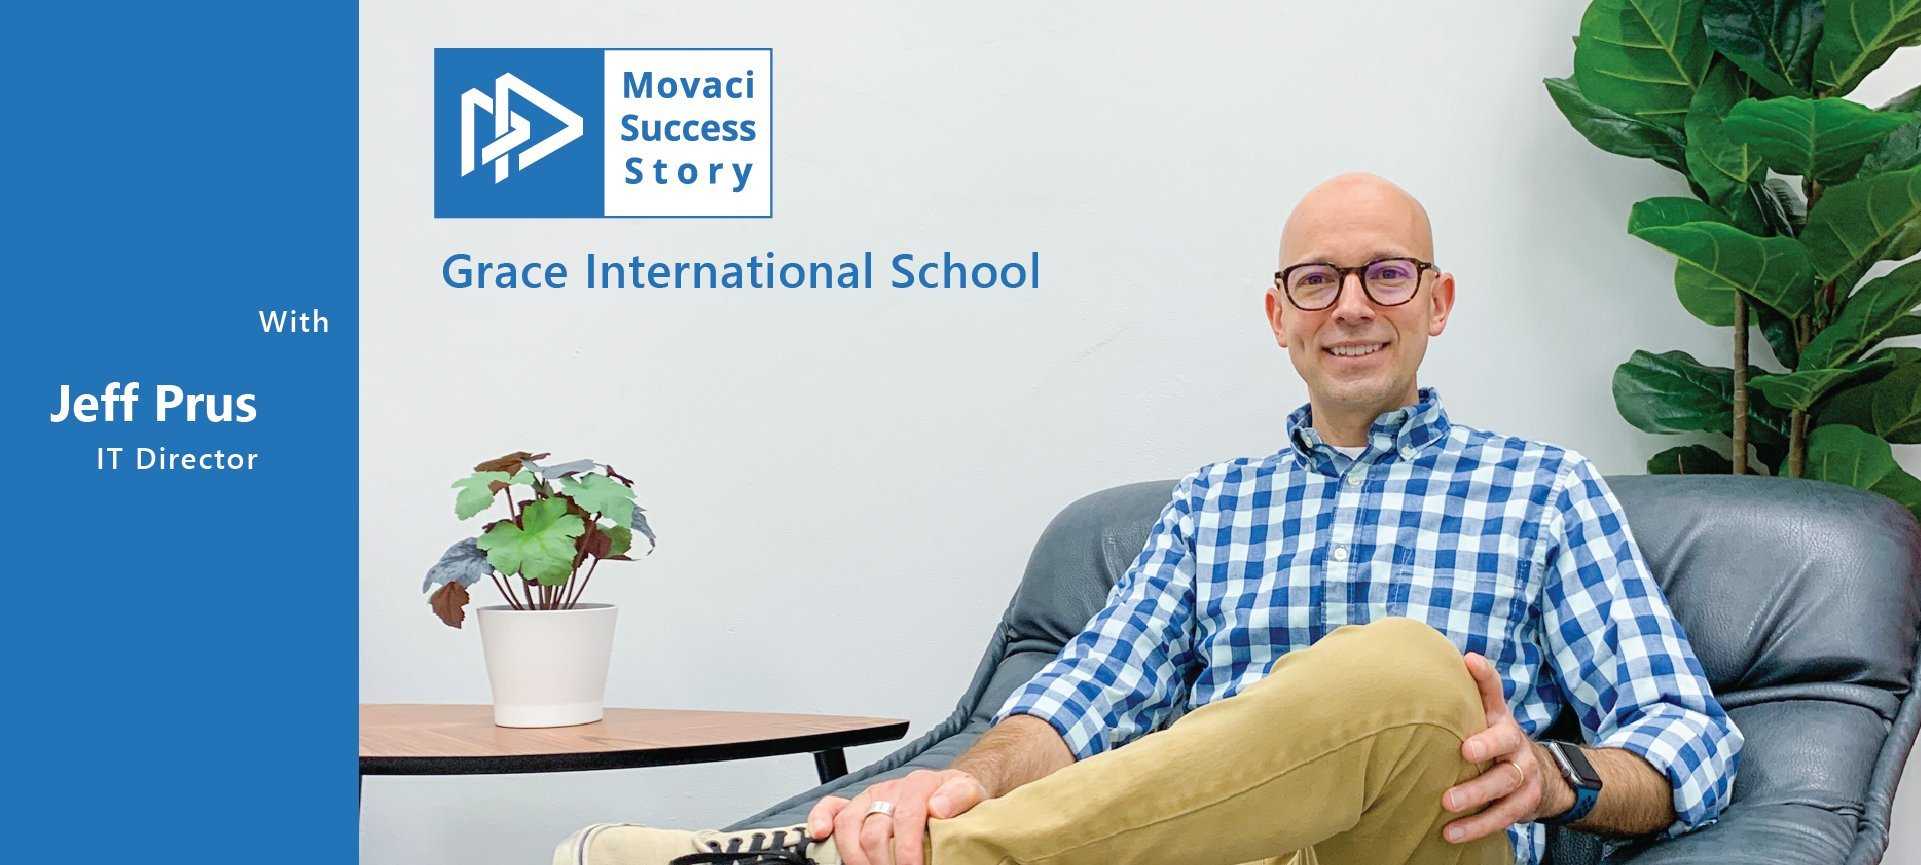 Movaci Success Story: Grace International School (GIS) 1